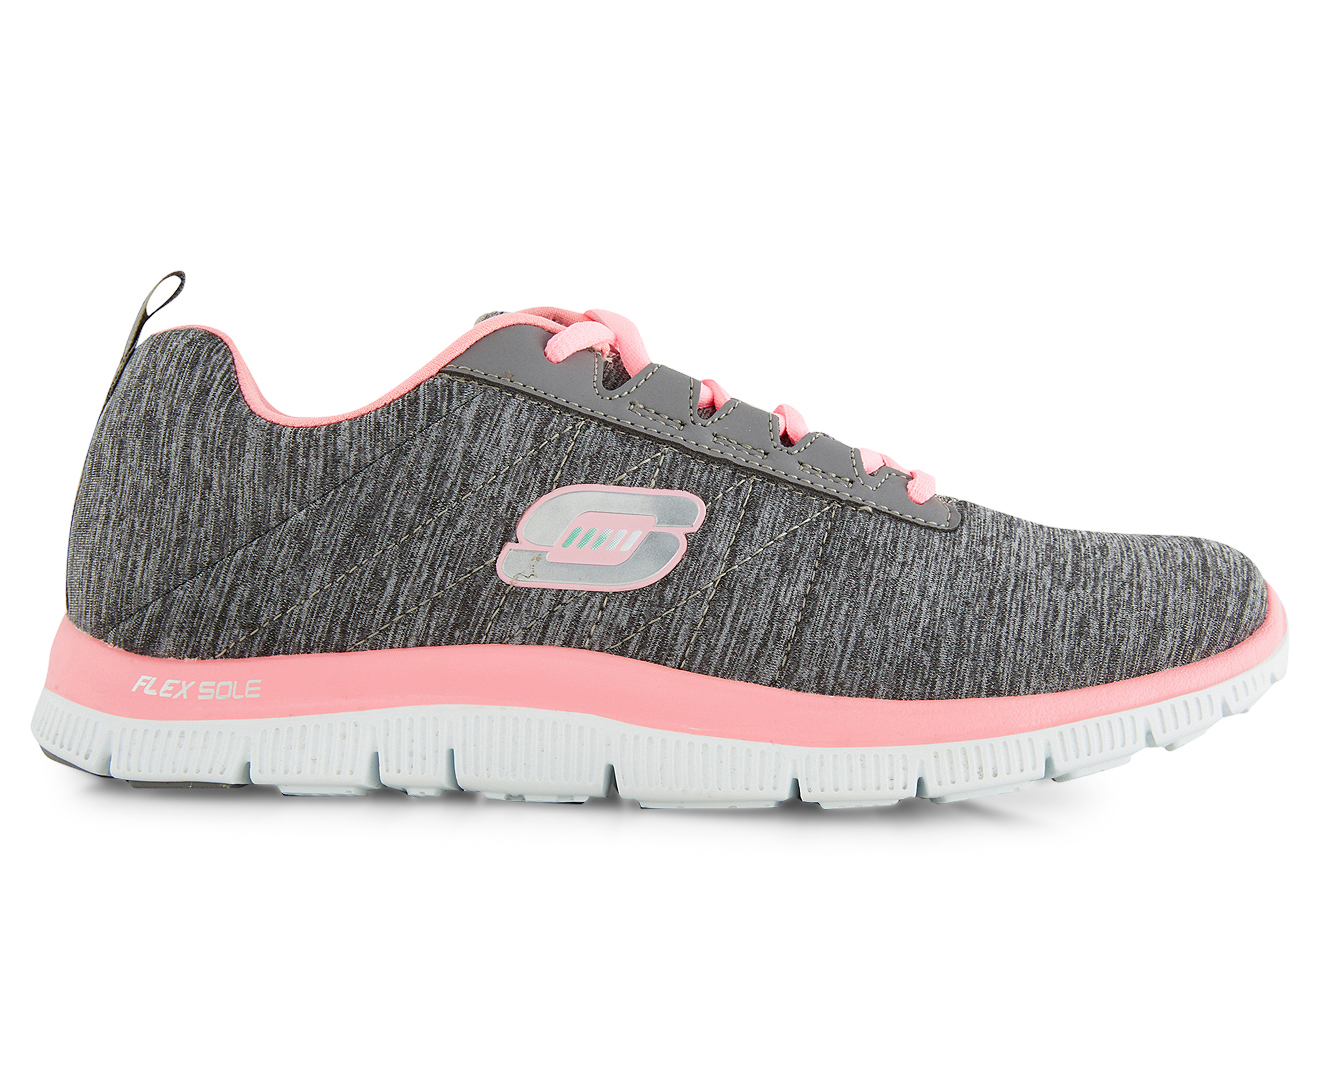 next skechers